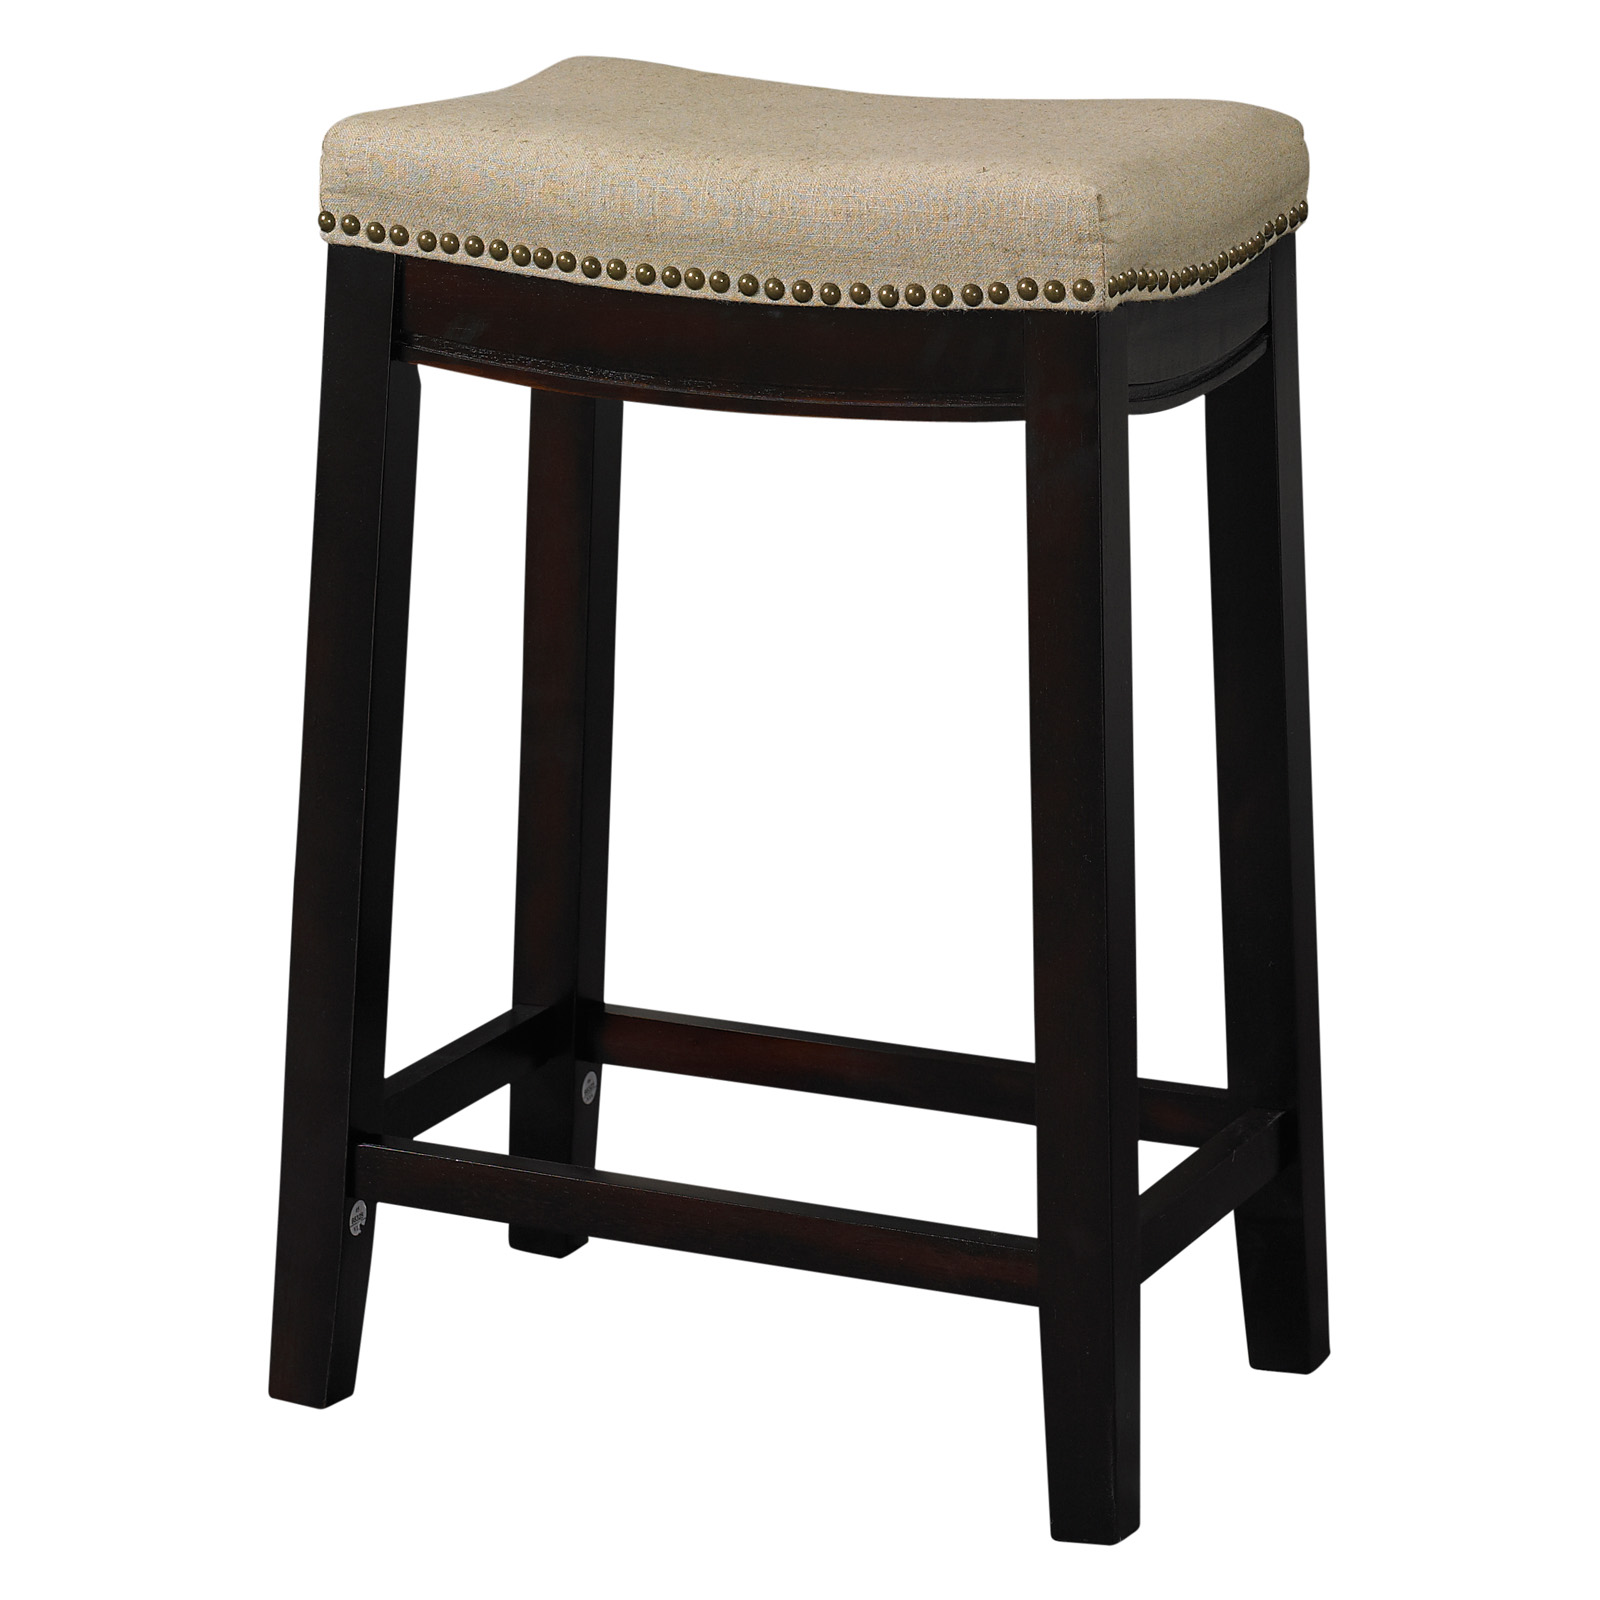 Linon Allure 24 in. Backless Counter Height Stool